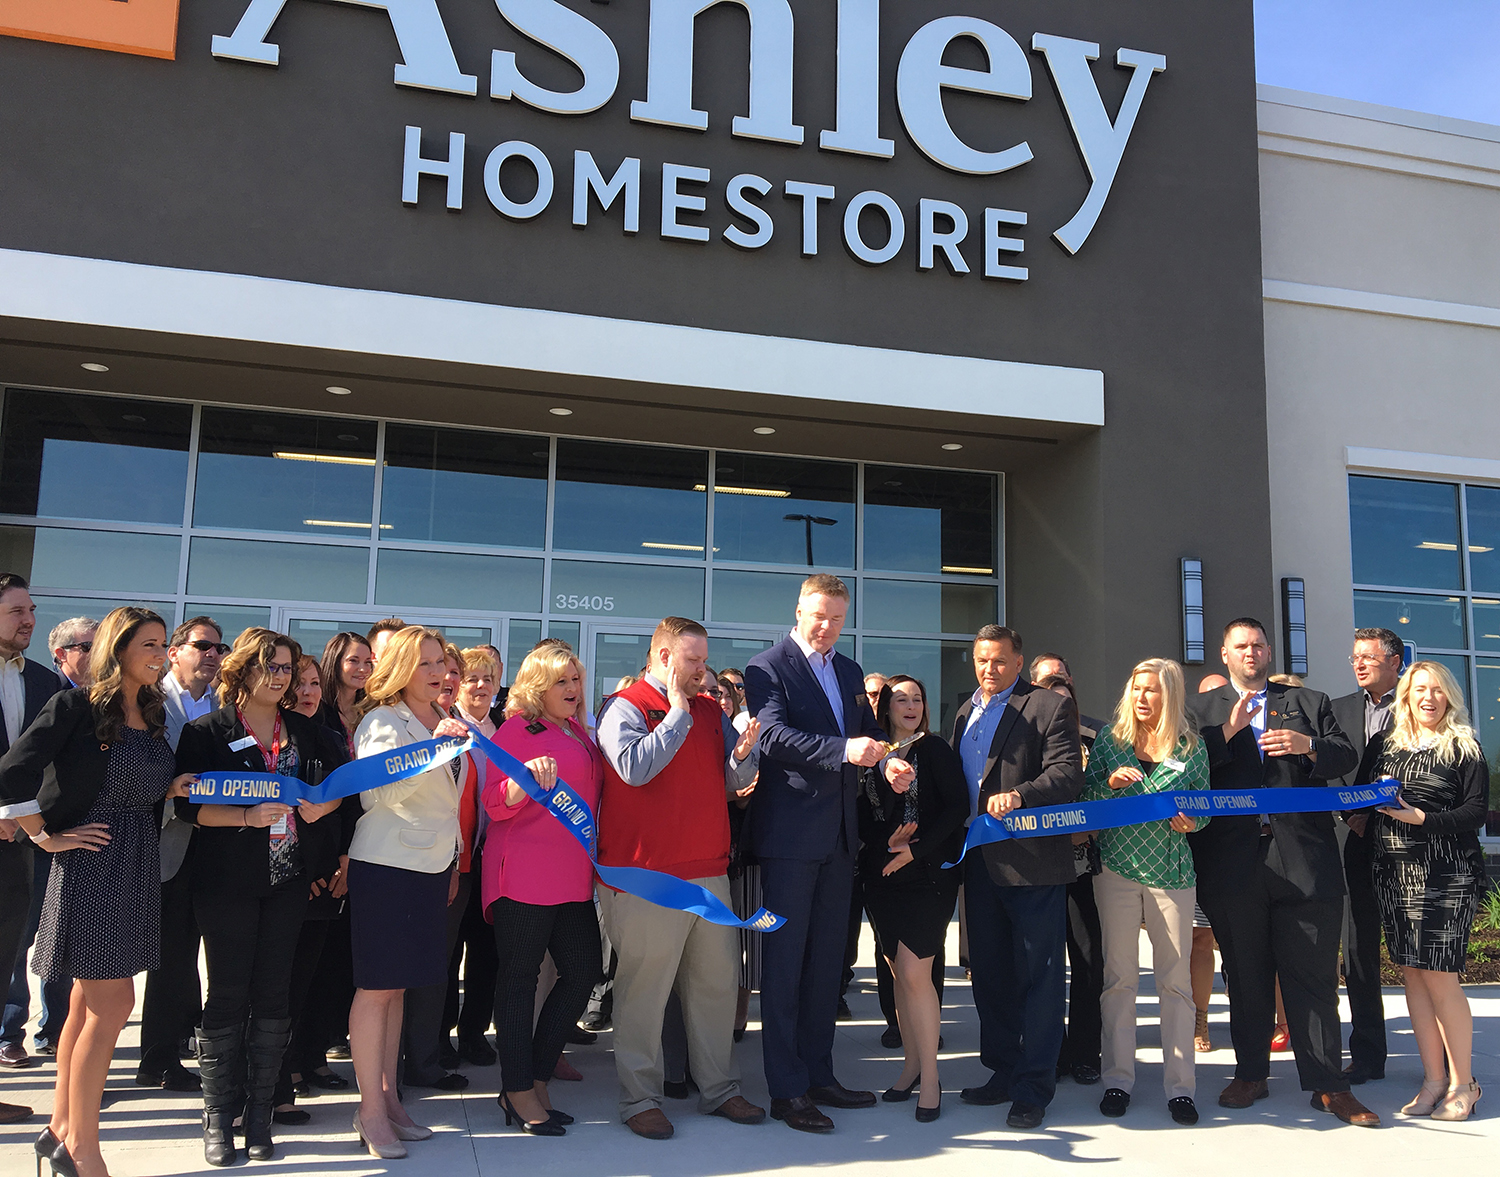 Owns And Operates Several Ashley Homes In The Tri State Area Announced Opening Of A New Home At 35405 Chester Rd Avon Ohio